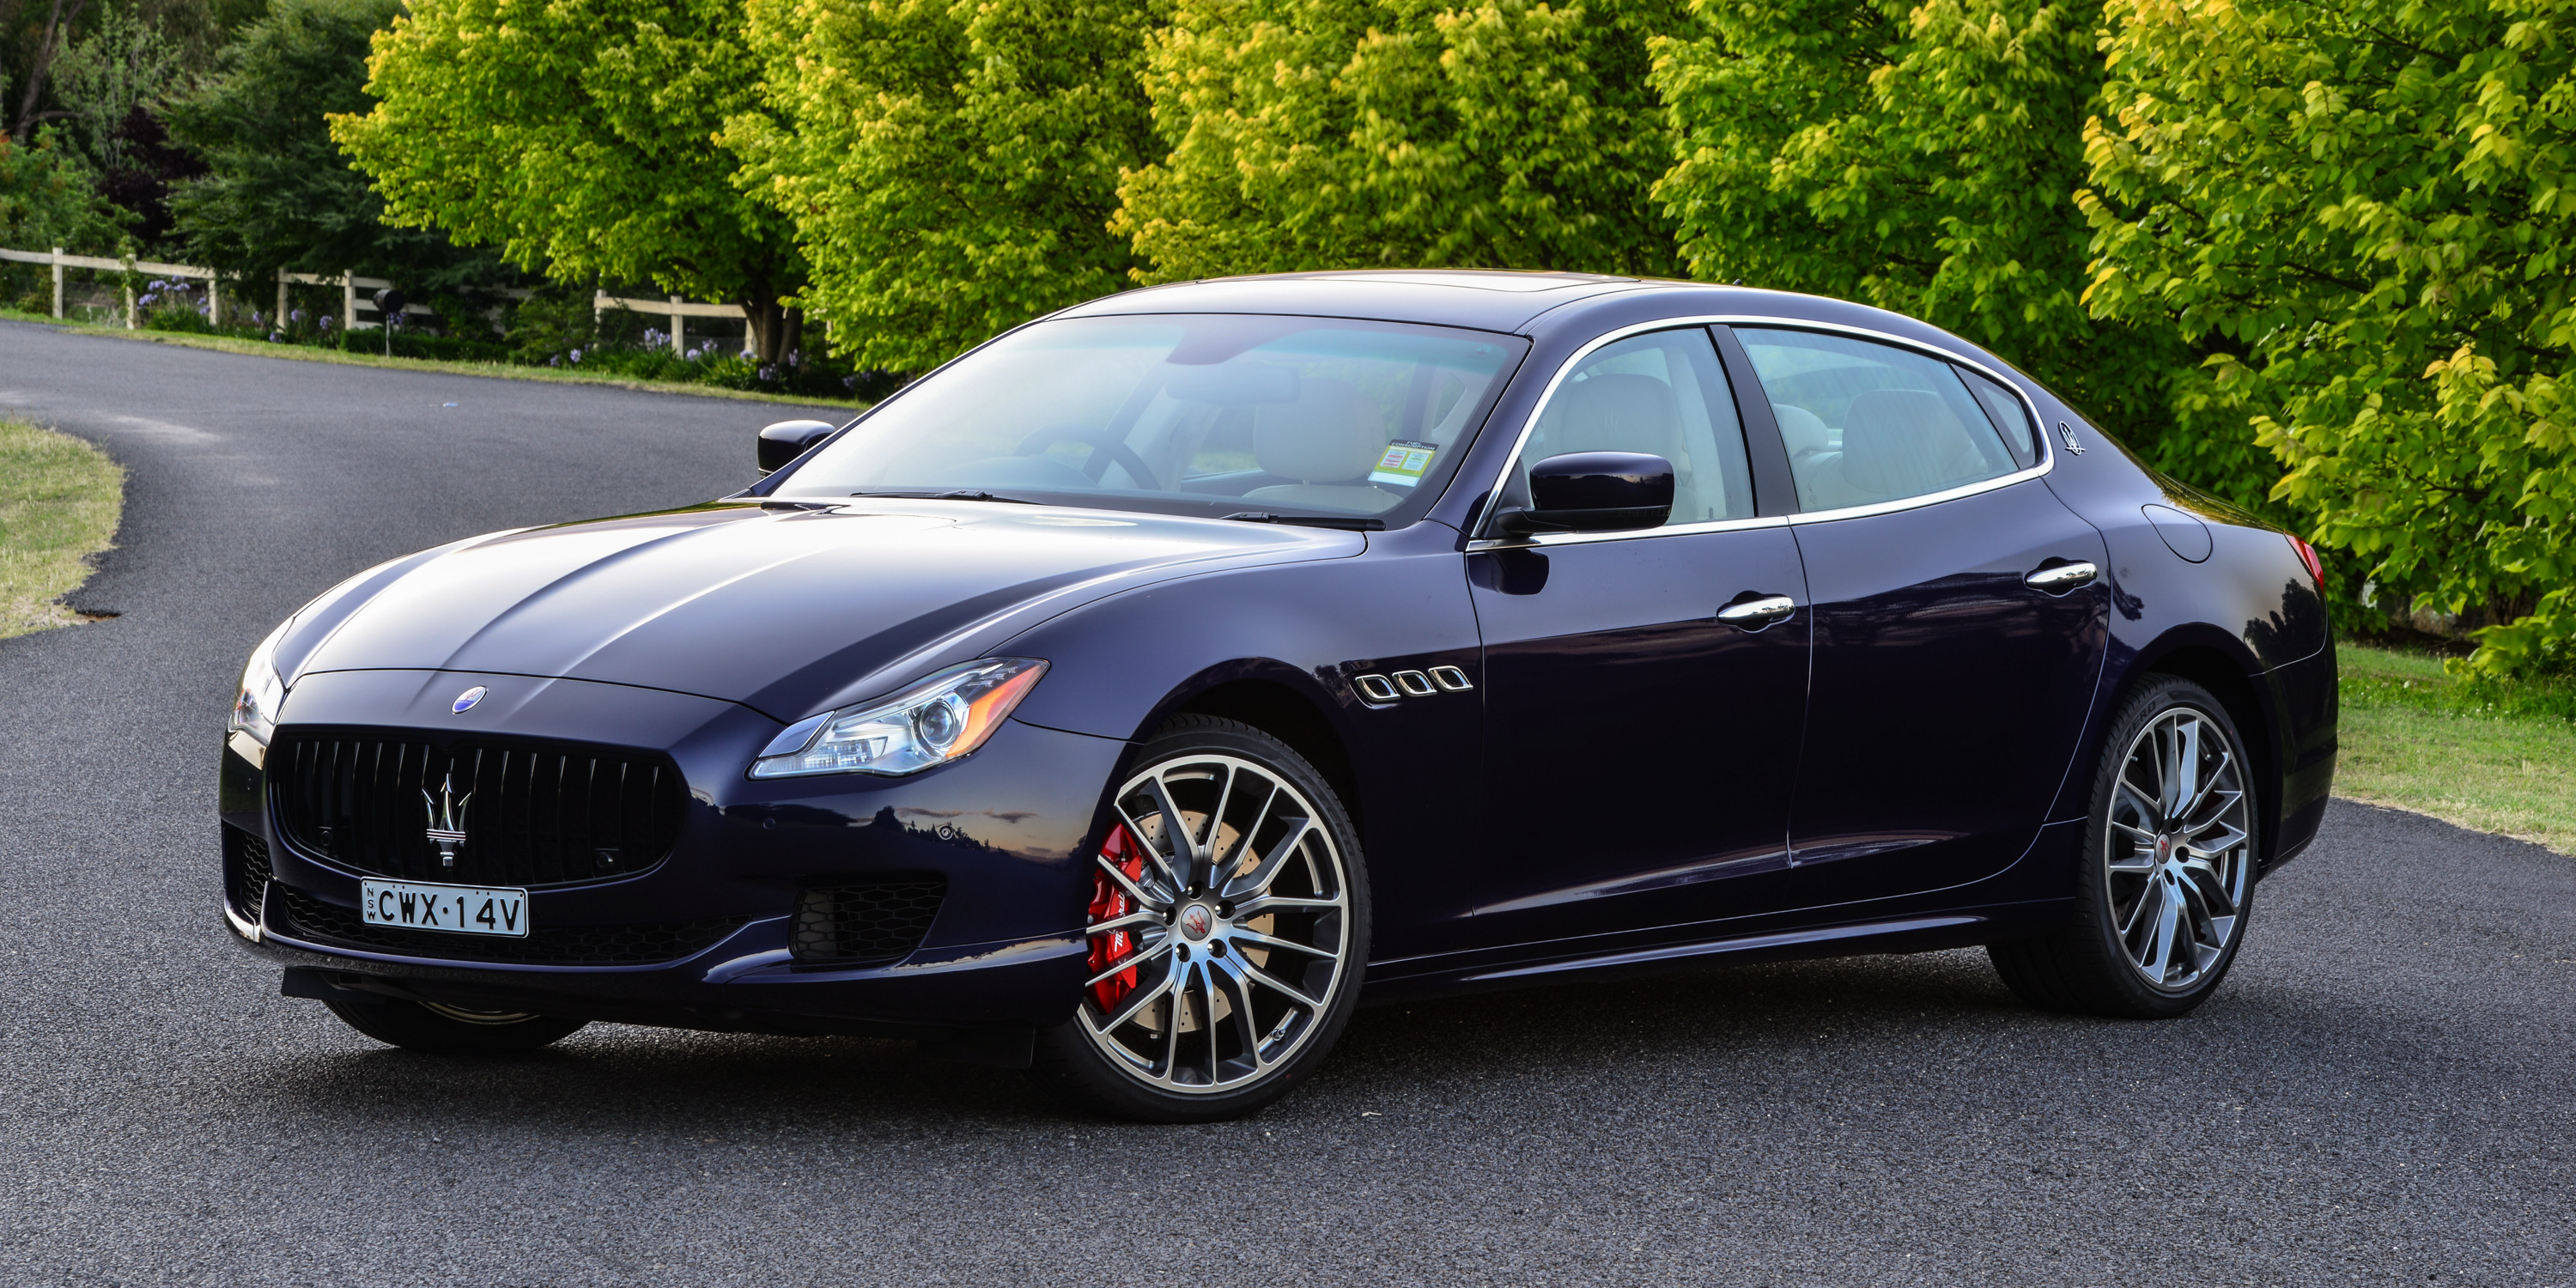 2016 Maserati Quattroporte GTS Review - photos | CarAdvice